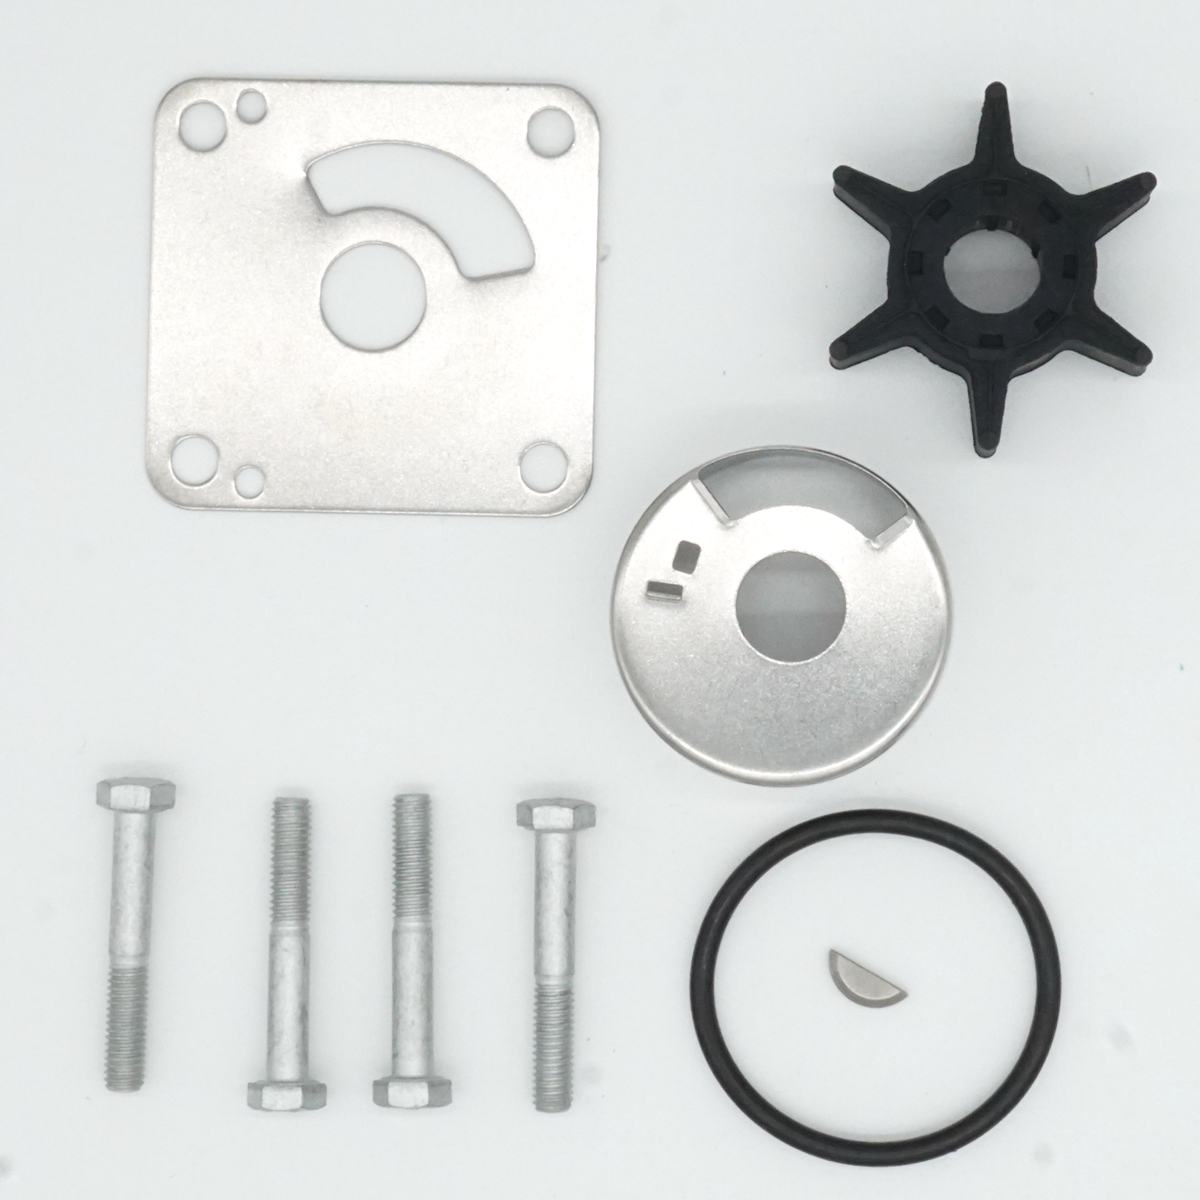 6L2-W0078-00-00 Water Pump Repair kits for Yamaha Outboard 20-25HP